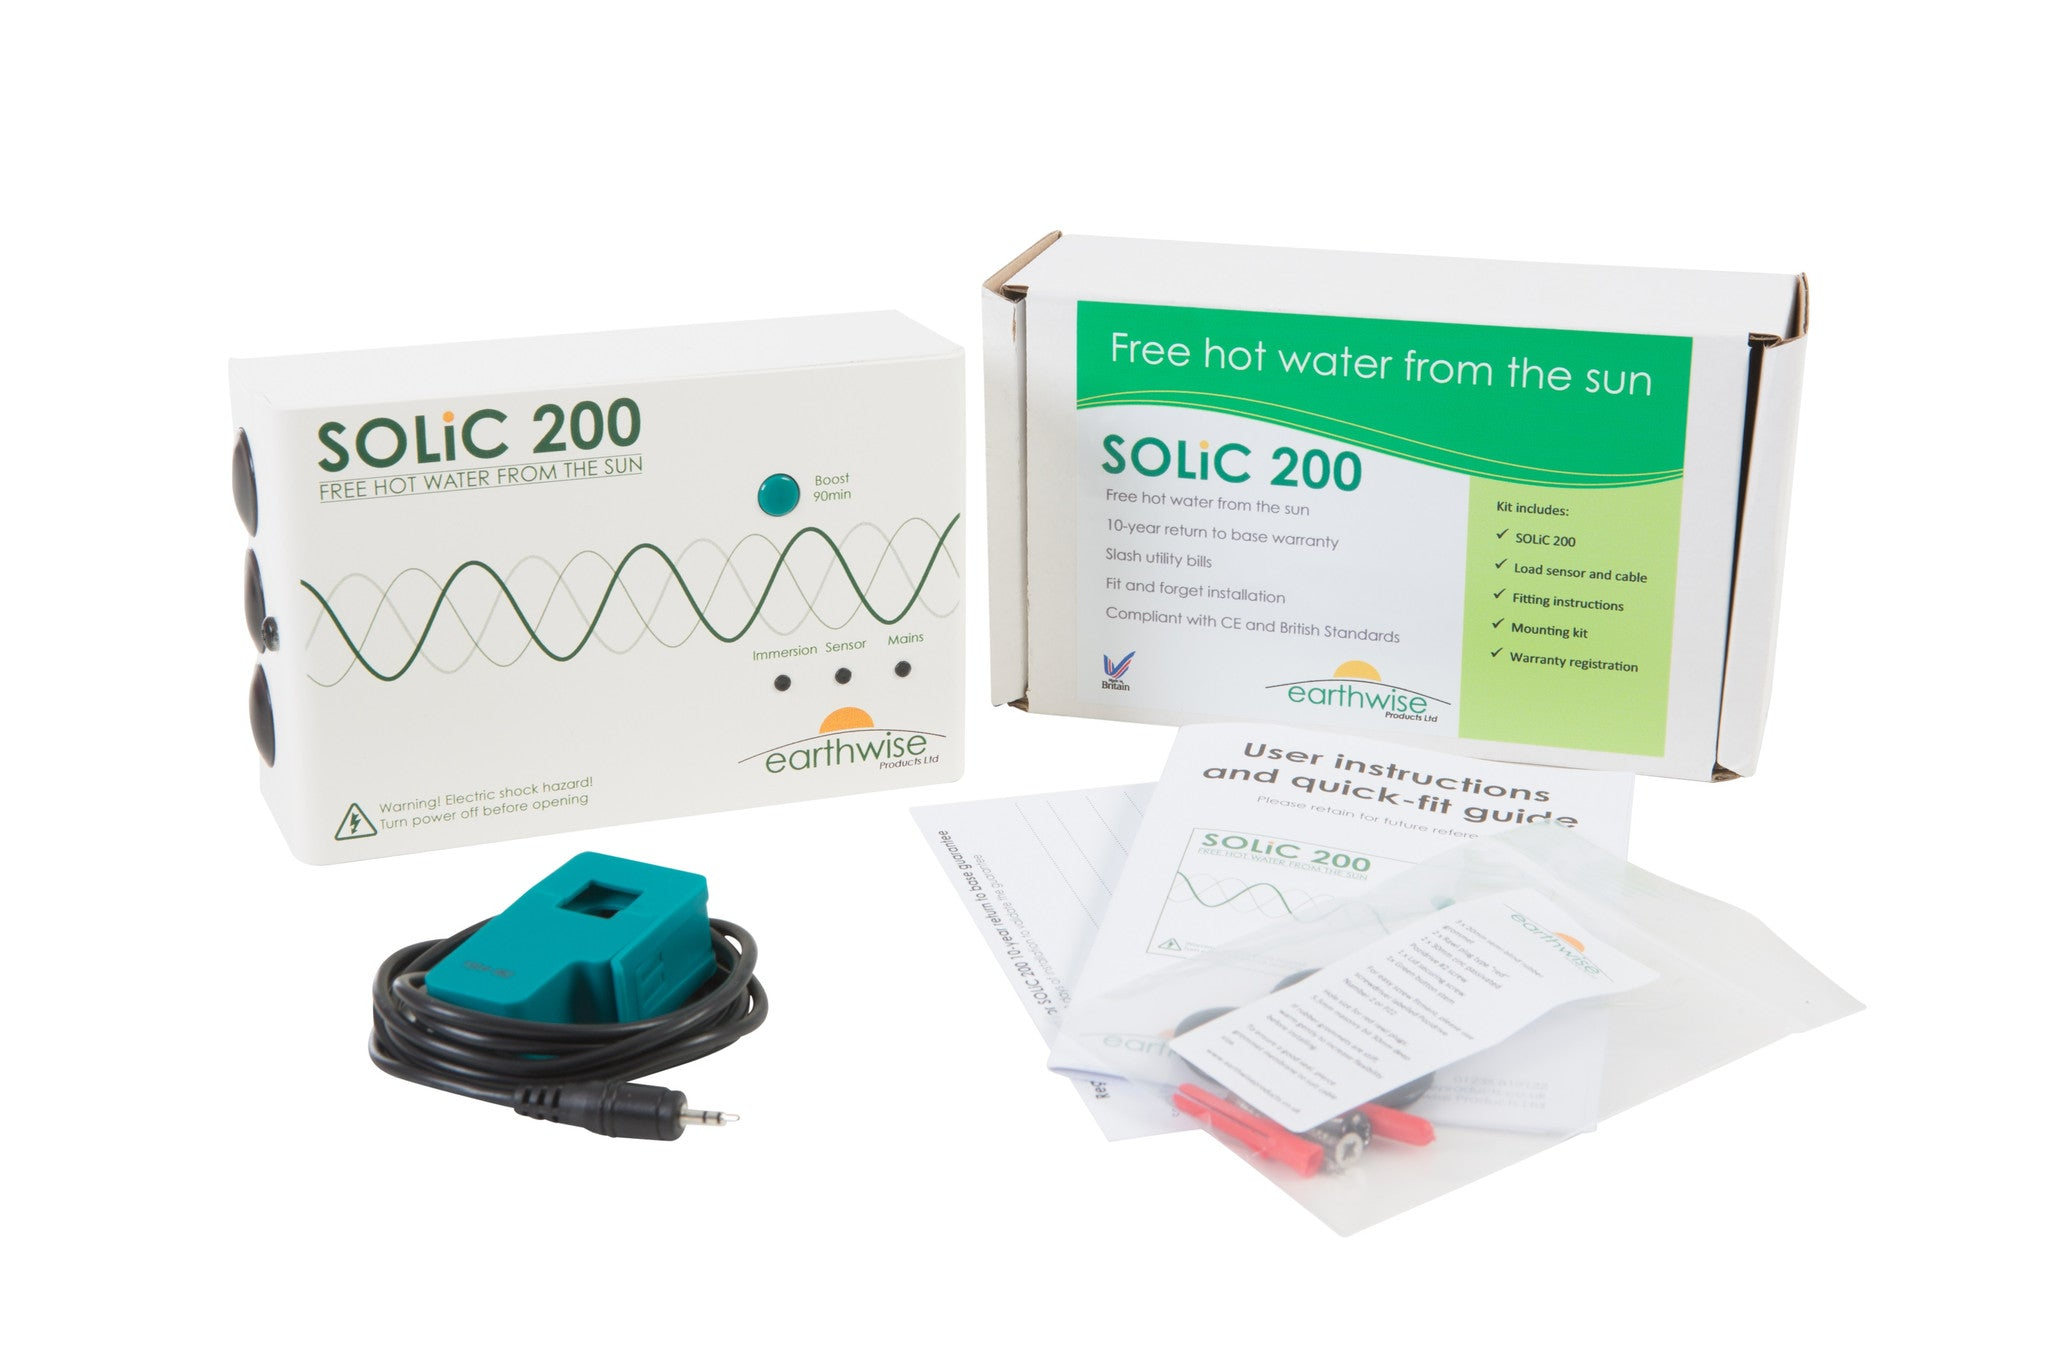 SOLiC 200 Solar Immersion Controller